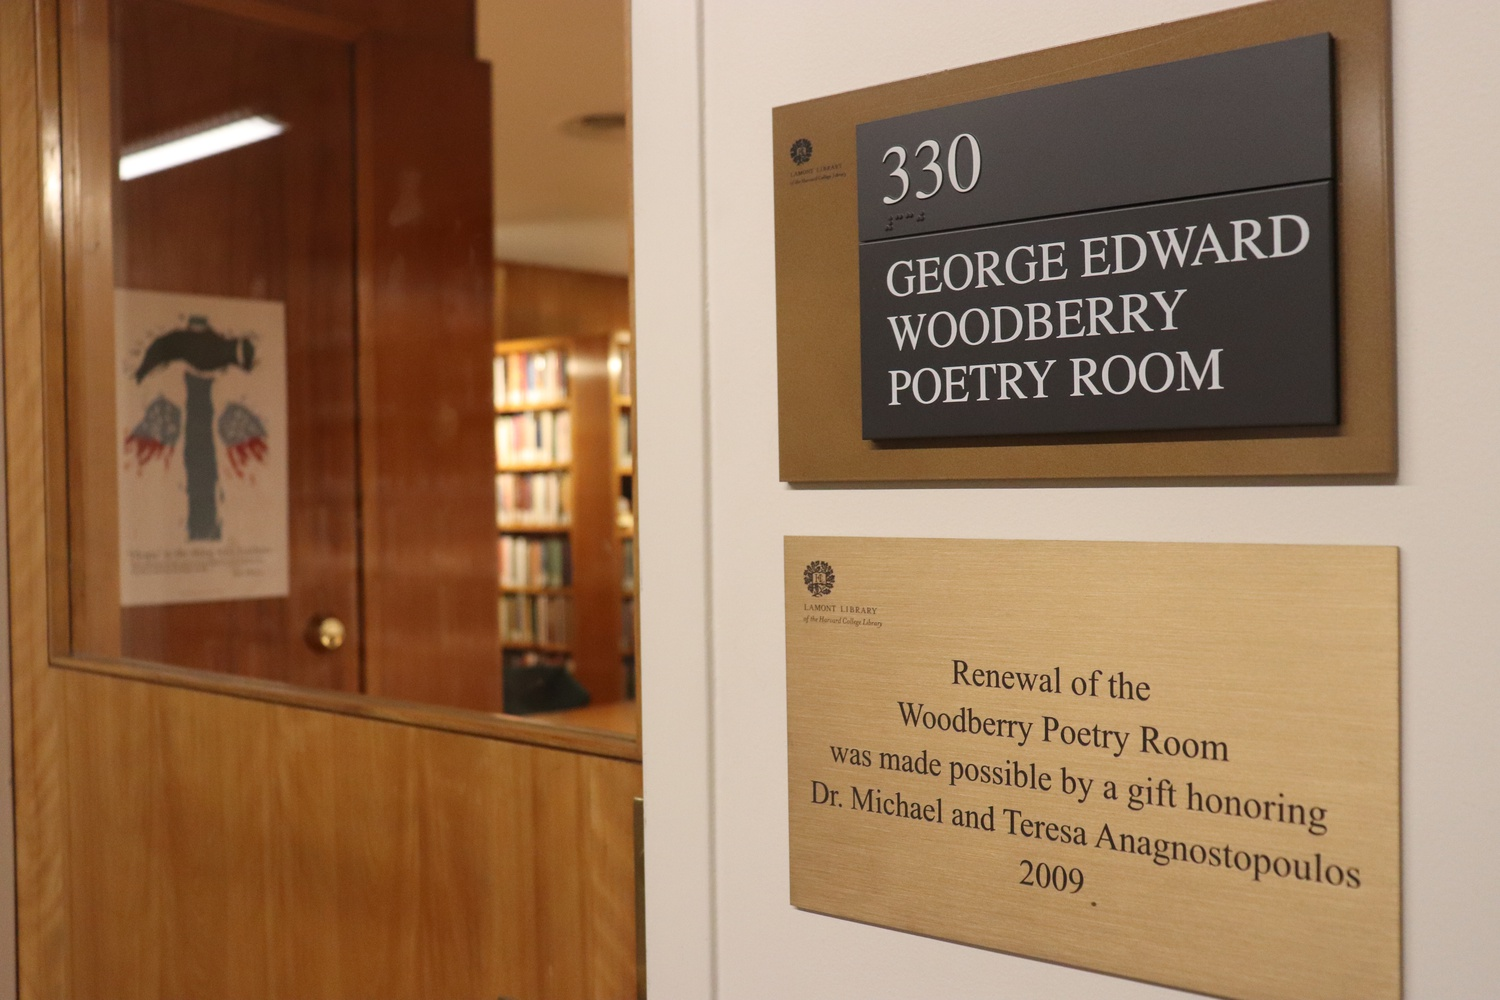 The Woodberry Poetry Room is on the third floor of Lamont Library.